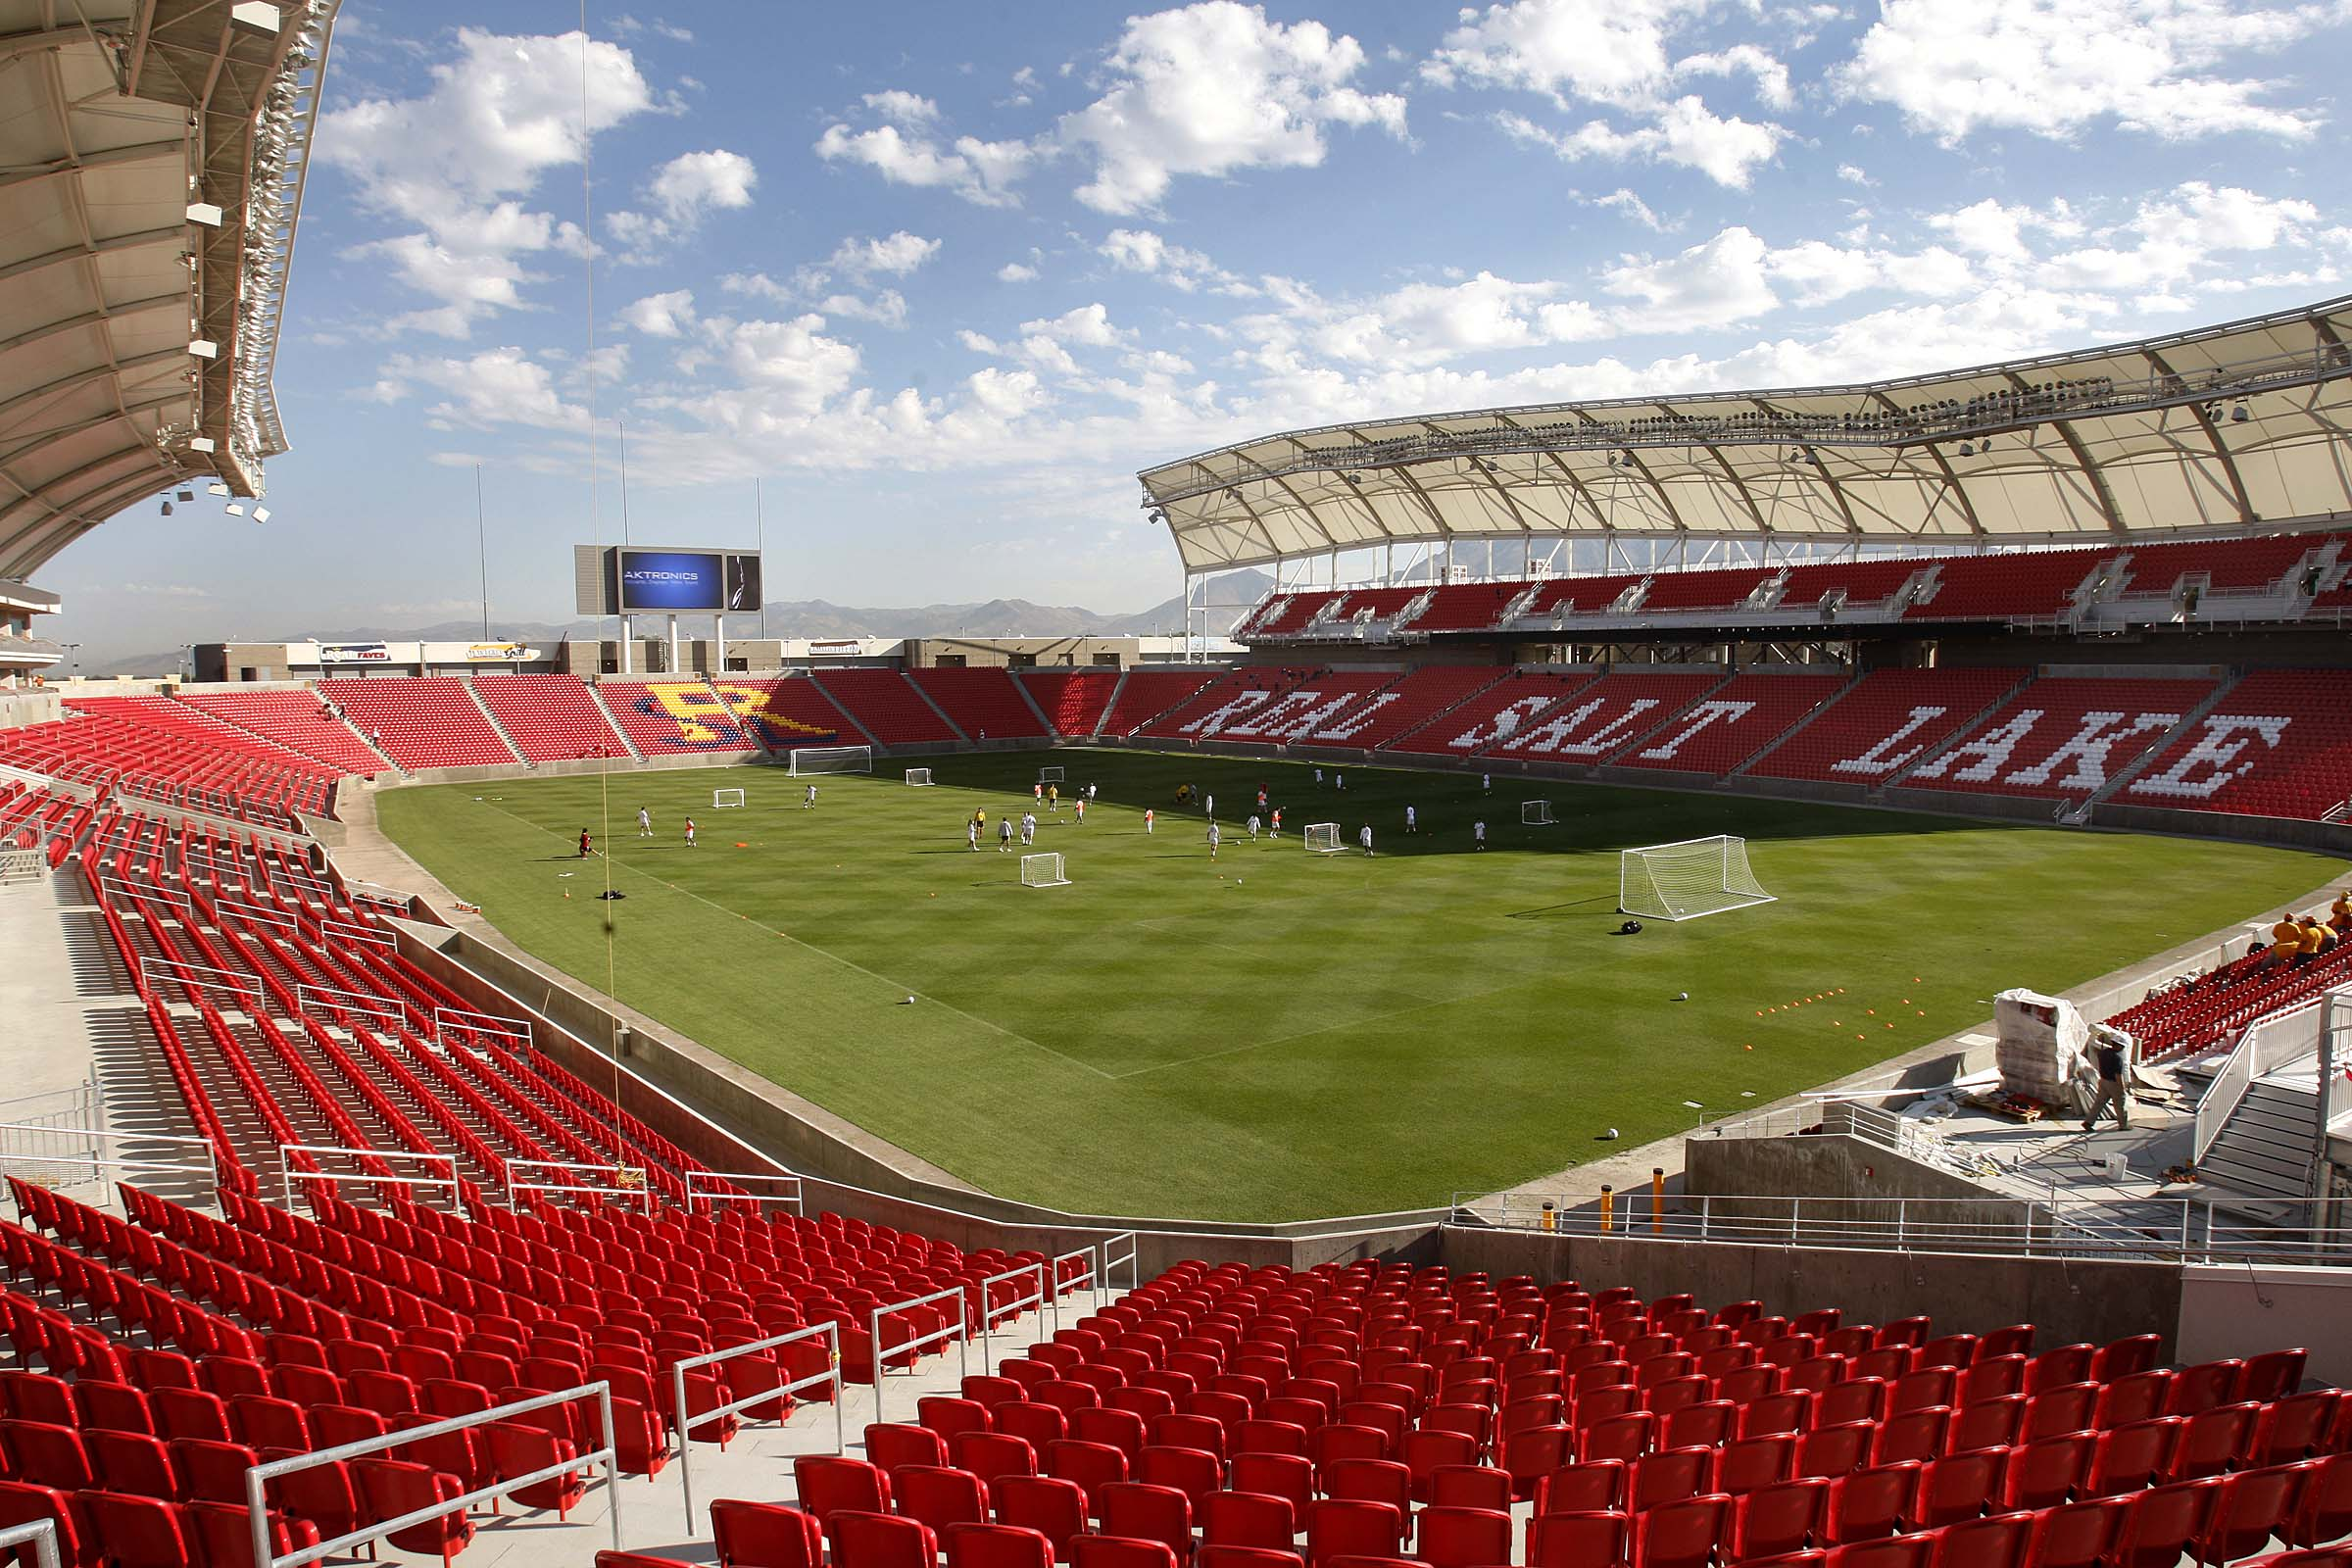 The Real Salt Lake soccer team practices at its new stadium, Rio Tinto Stadium in Sandy. Oct. 1, 2008.